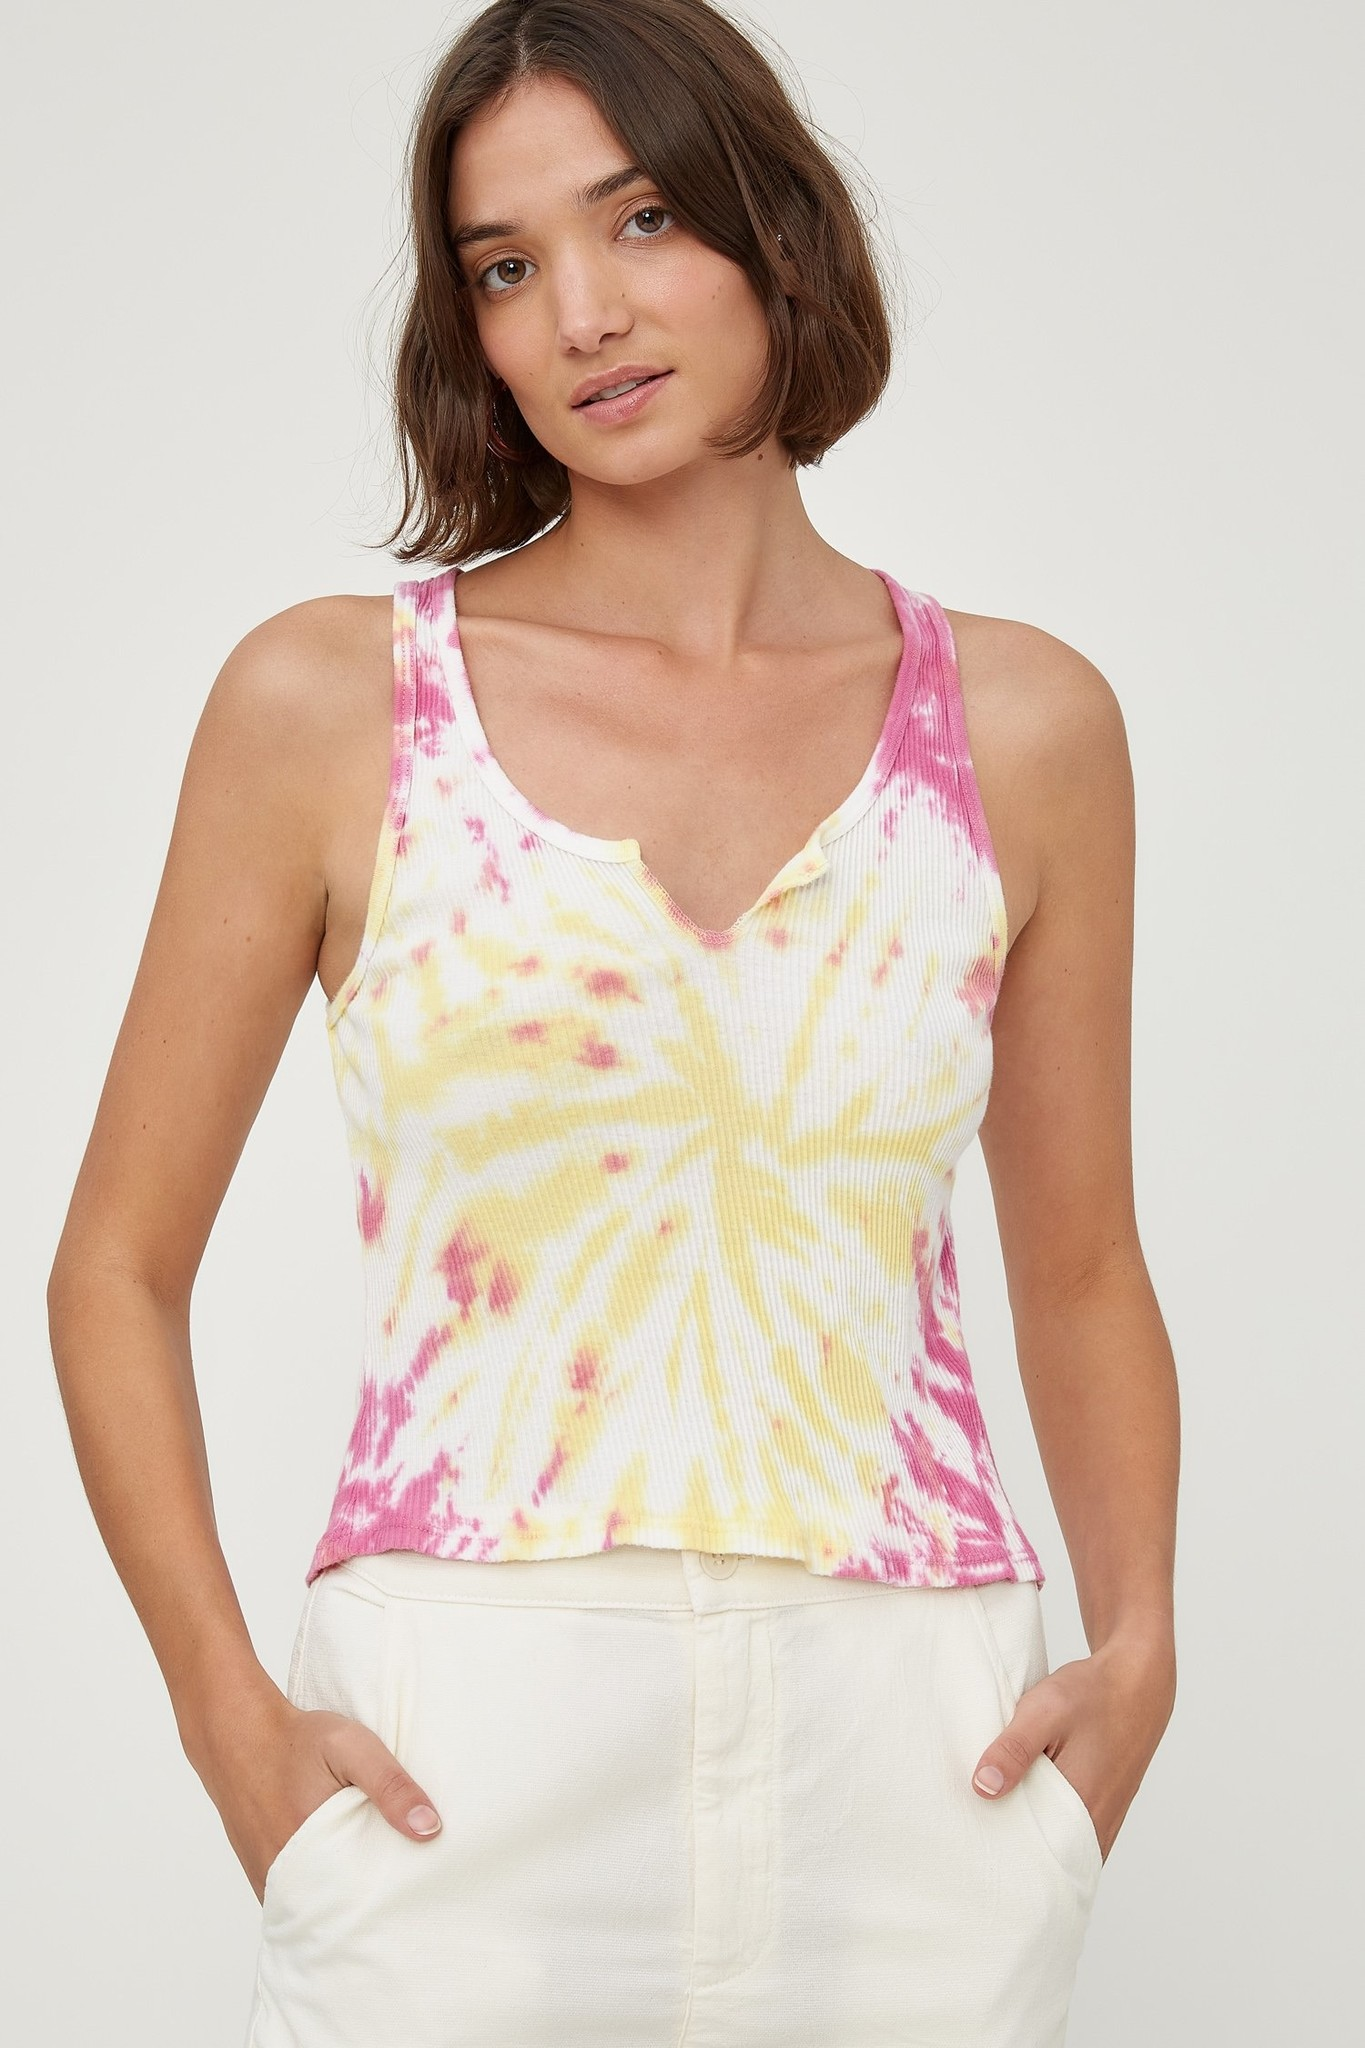 lacausa Lacausa Roxy Pink and Yellow Tie Dye Tank